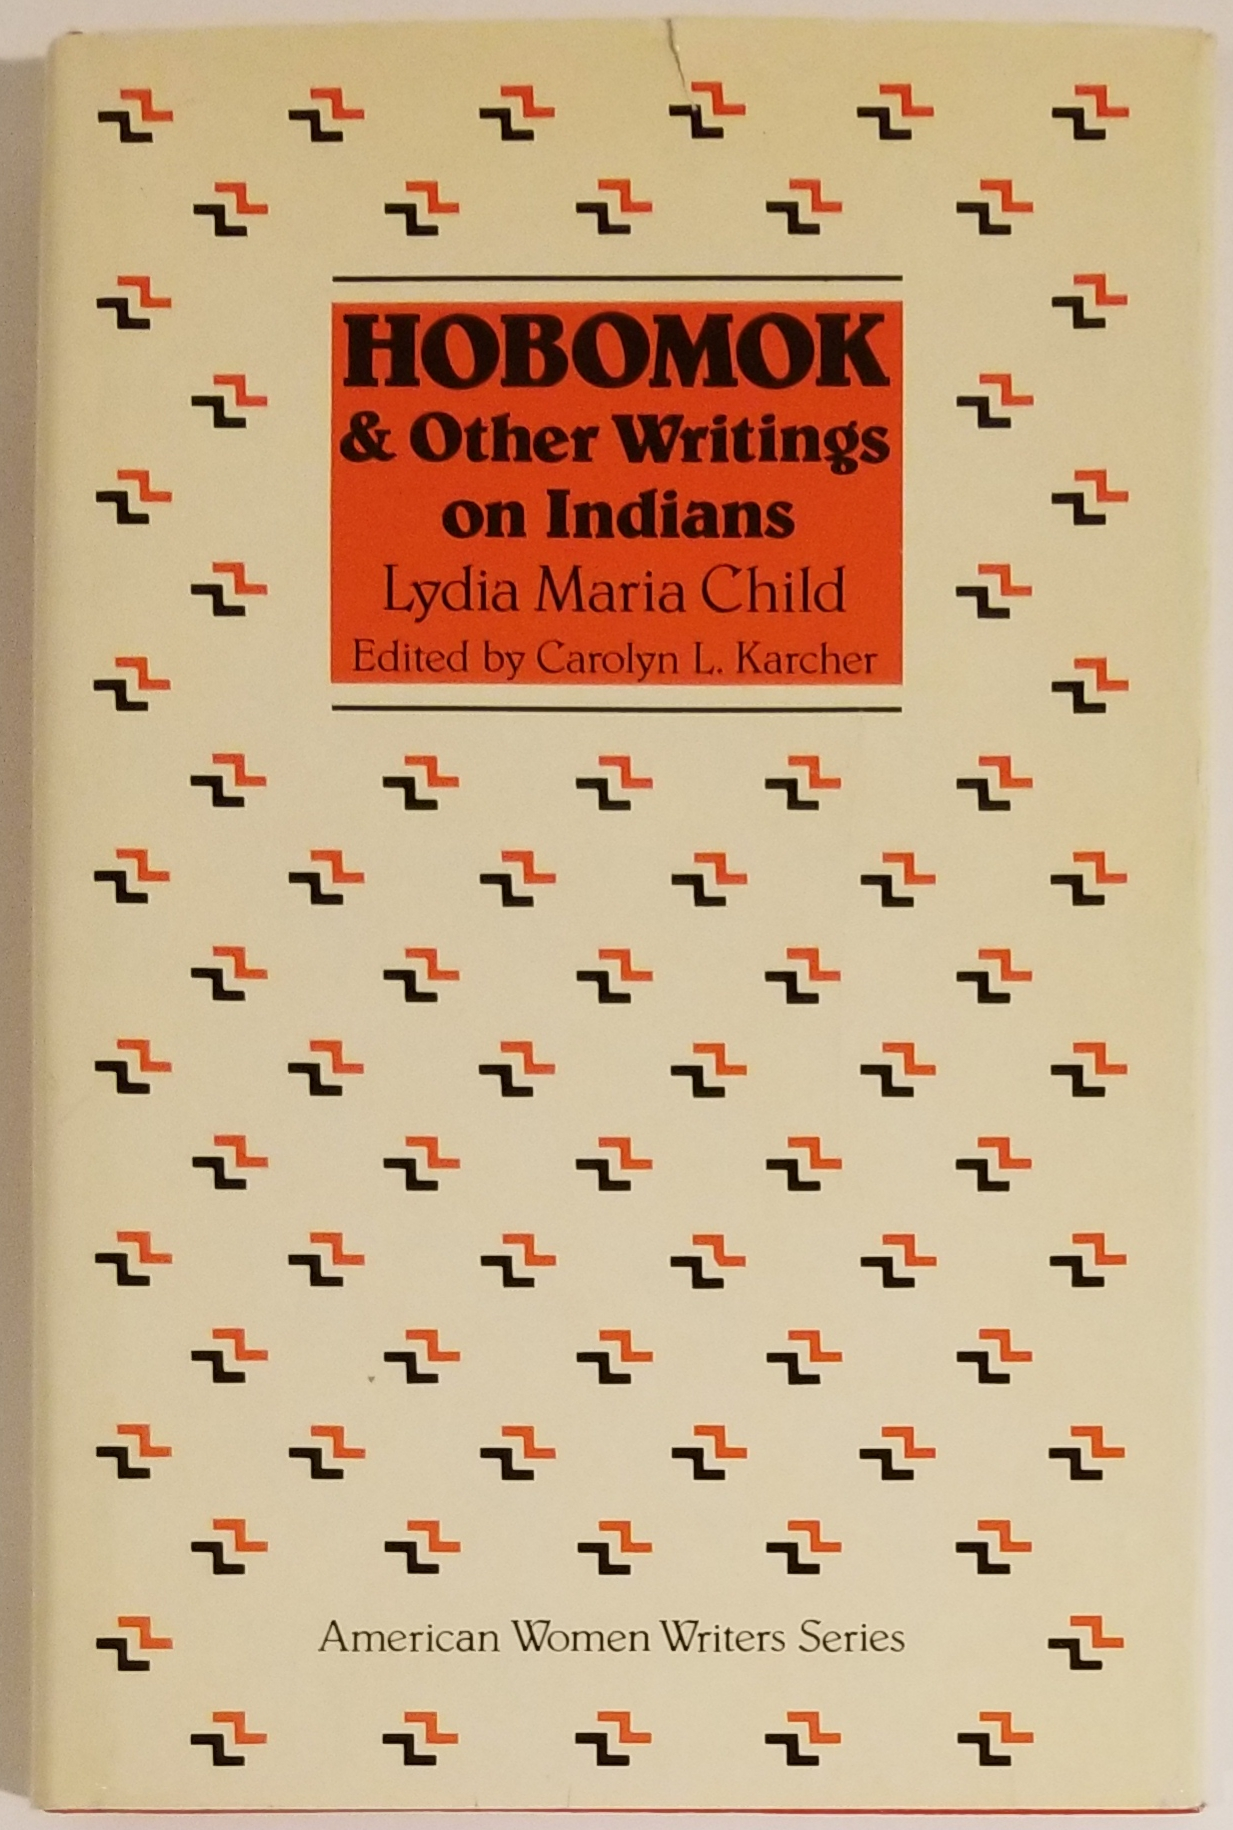 HOBOMOK & OTHER WRITINGS ON INDIANS. Lydia Maria Child, Carloyn L. Karcher.